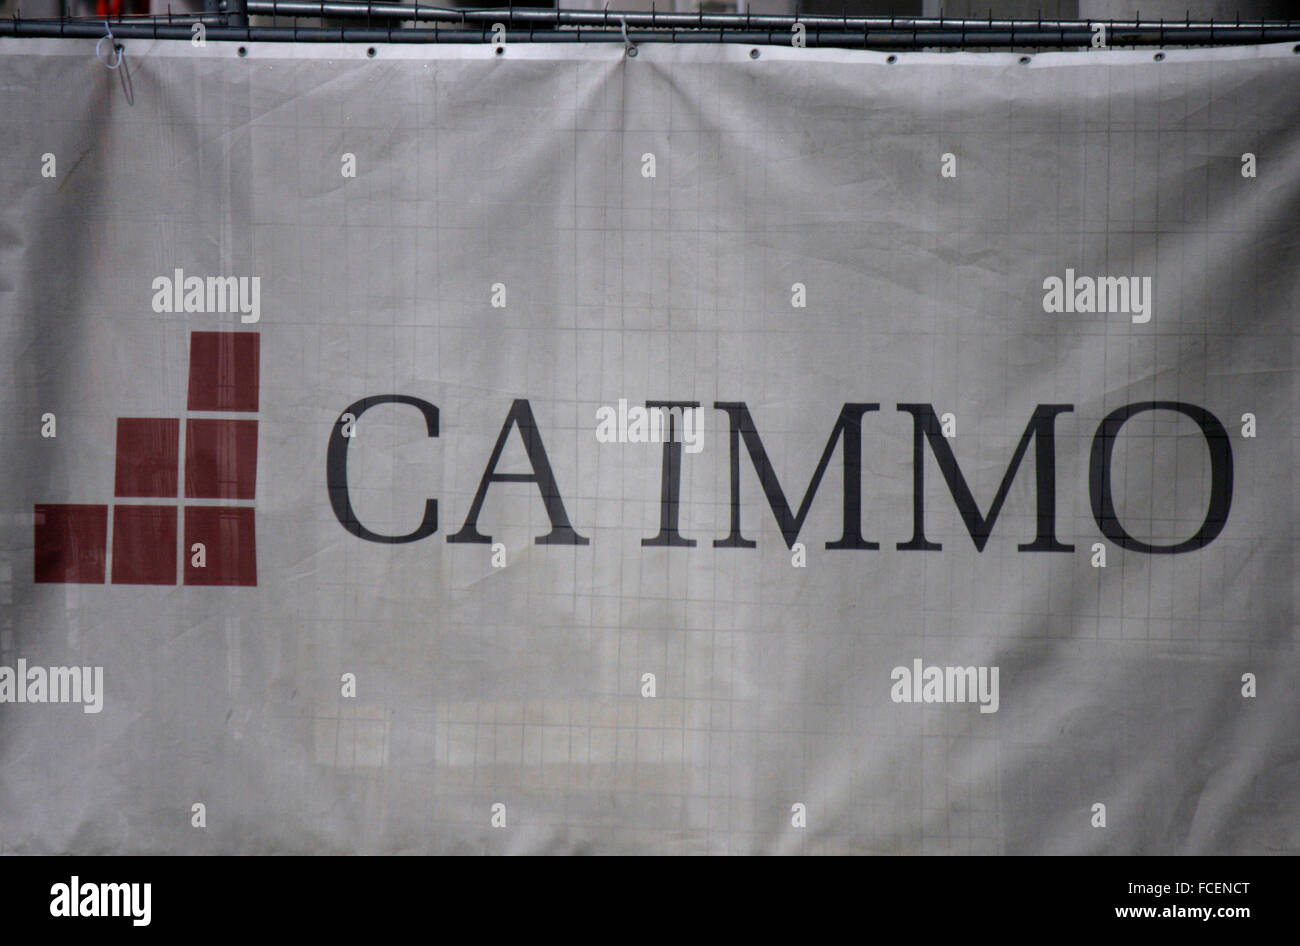 Markenname: 'Ca Immo', Berlin. - Stock Image